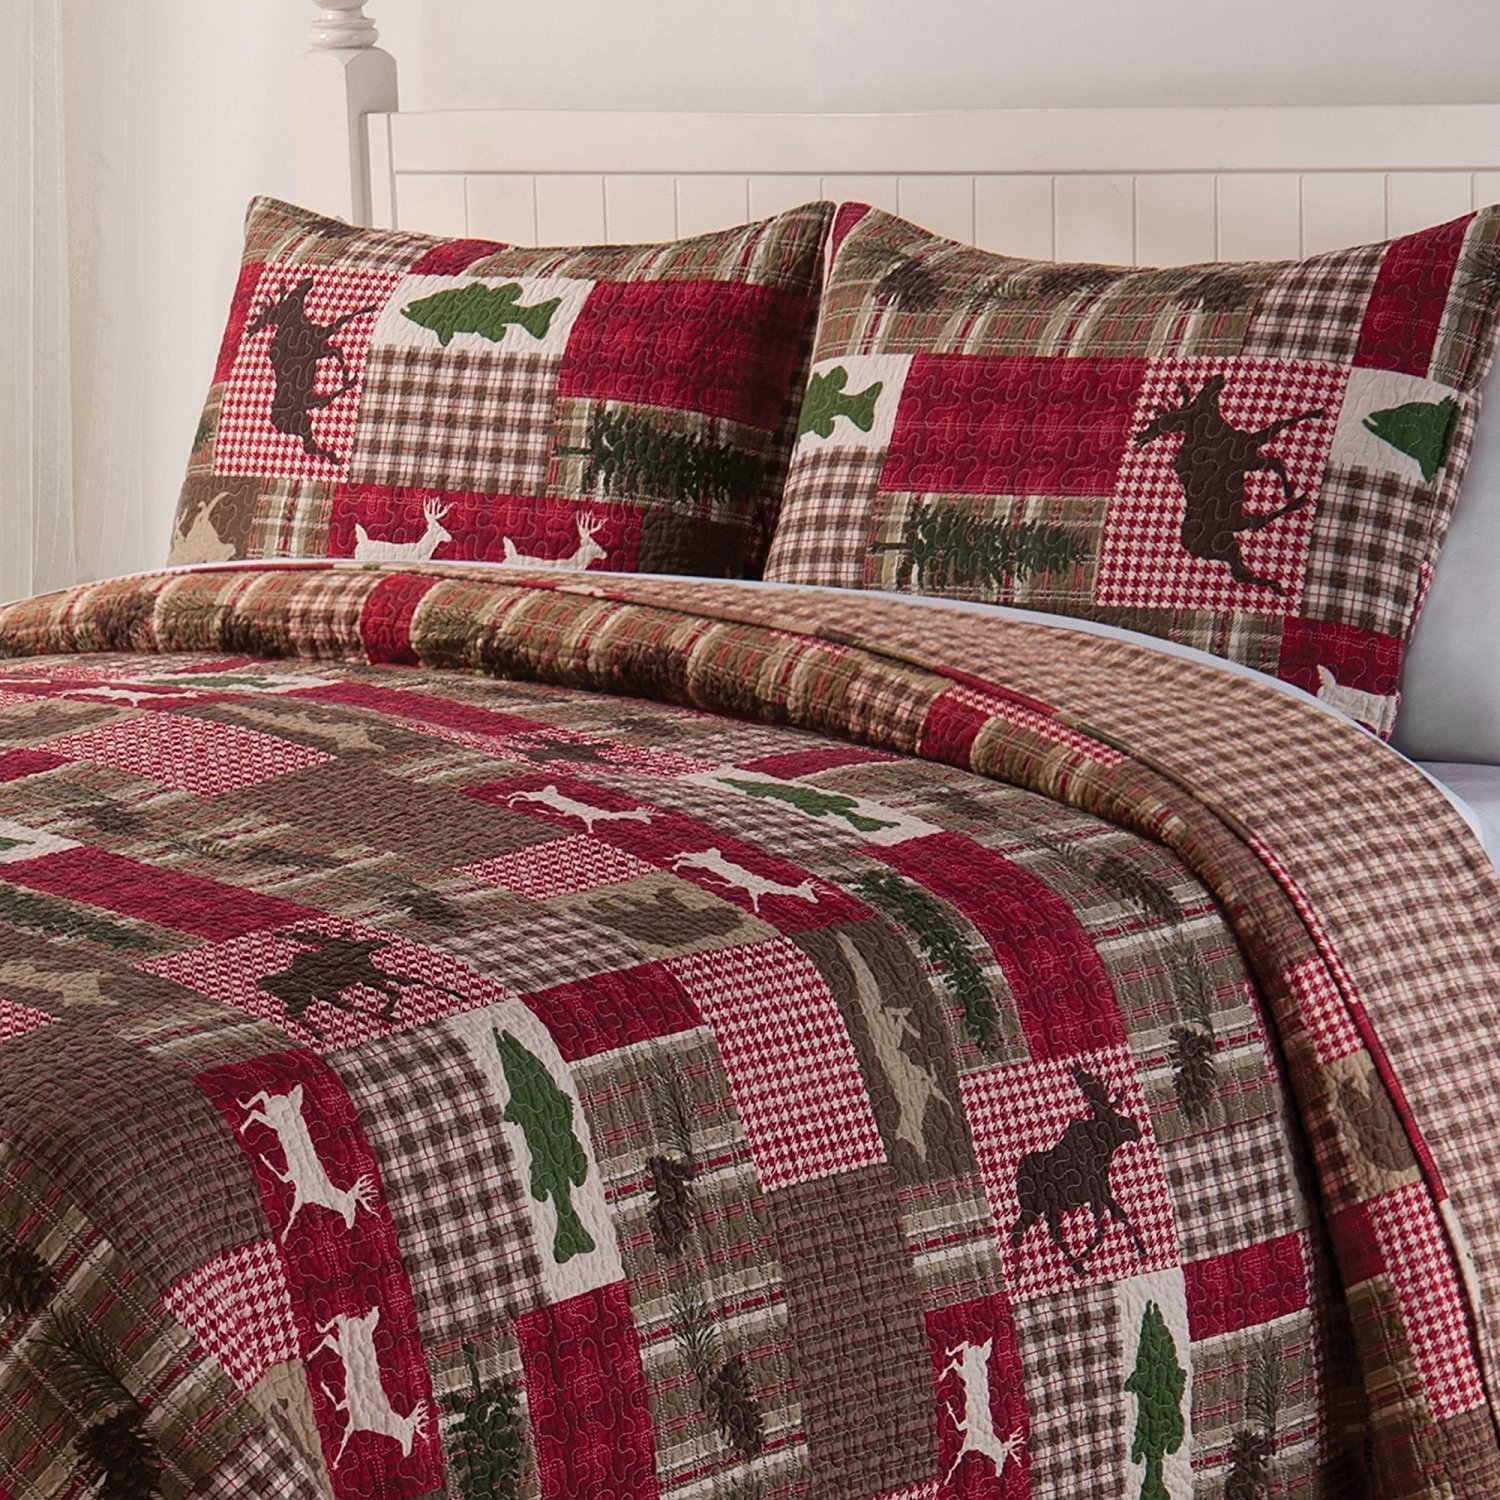 OSD 2pc Green Red Brown Moose Deer Hunting Themed Twin Quilt Set, Cotton, Cabin Themed Bedding Southwest Fish Plaid Checked Patchwork Wildlife Country Lodge Animal White